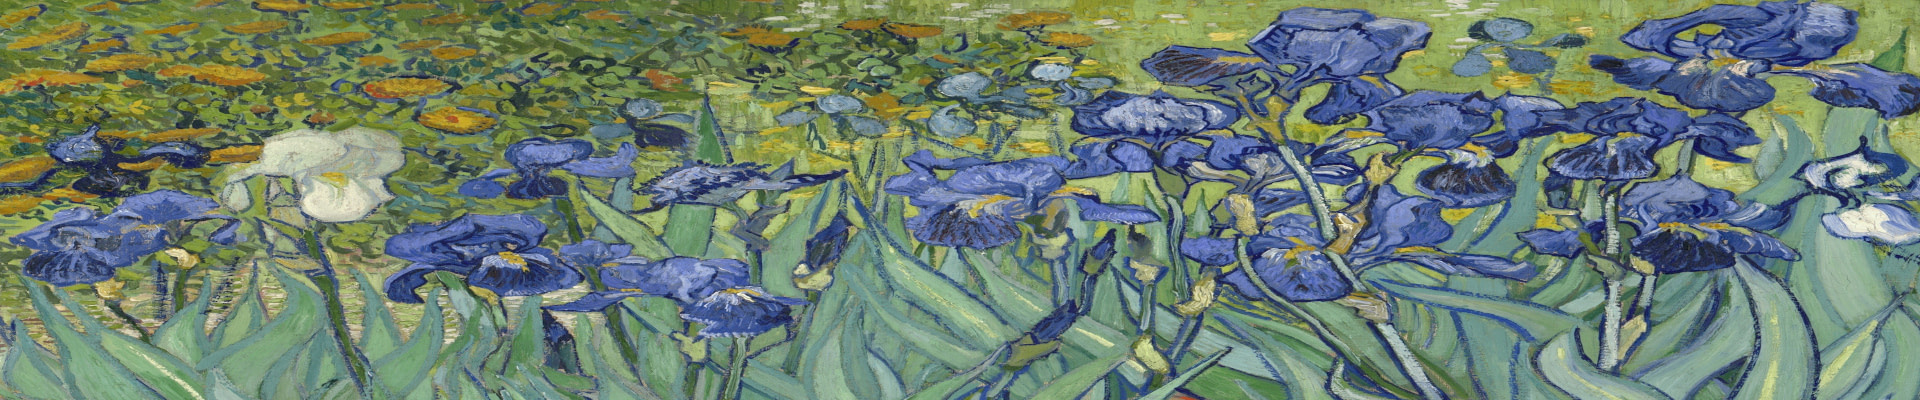 Van Gogh style wall art canvas and paper prints